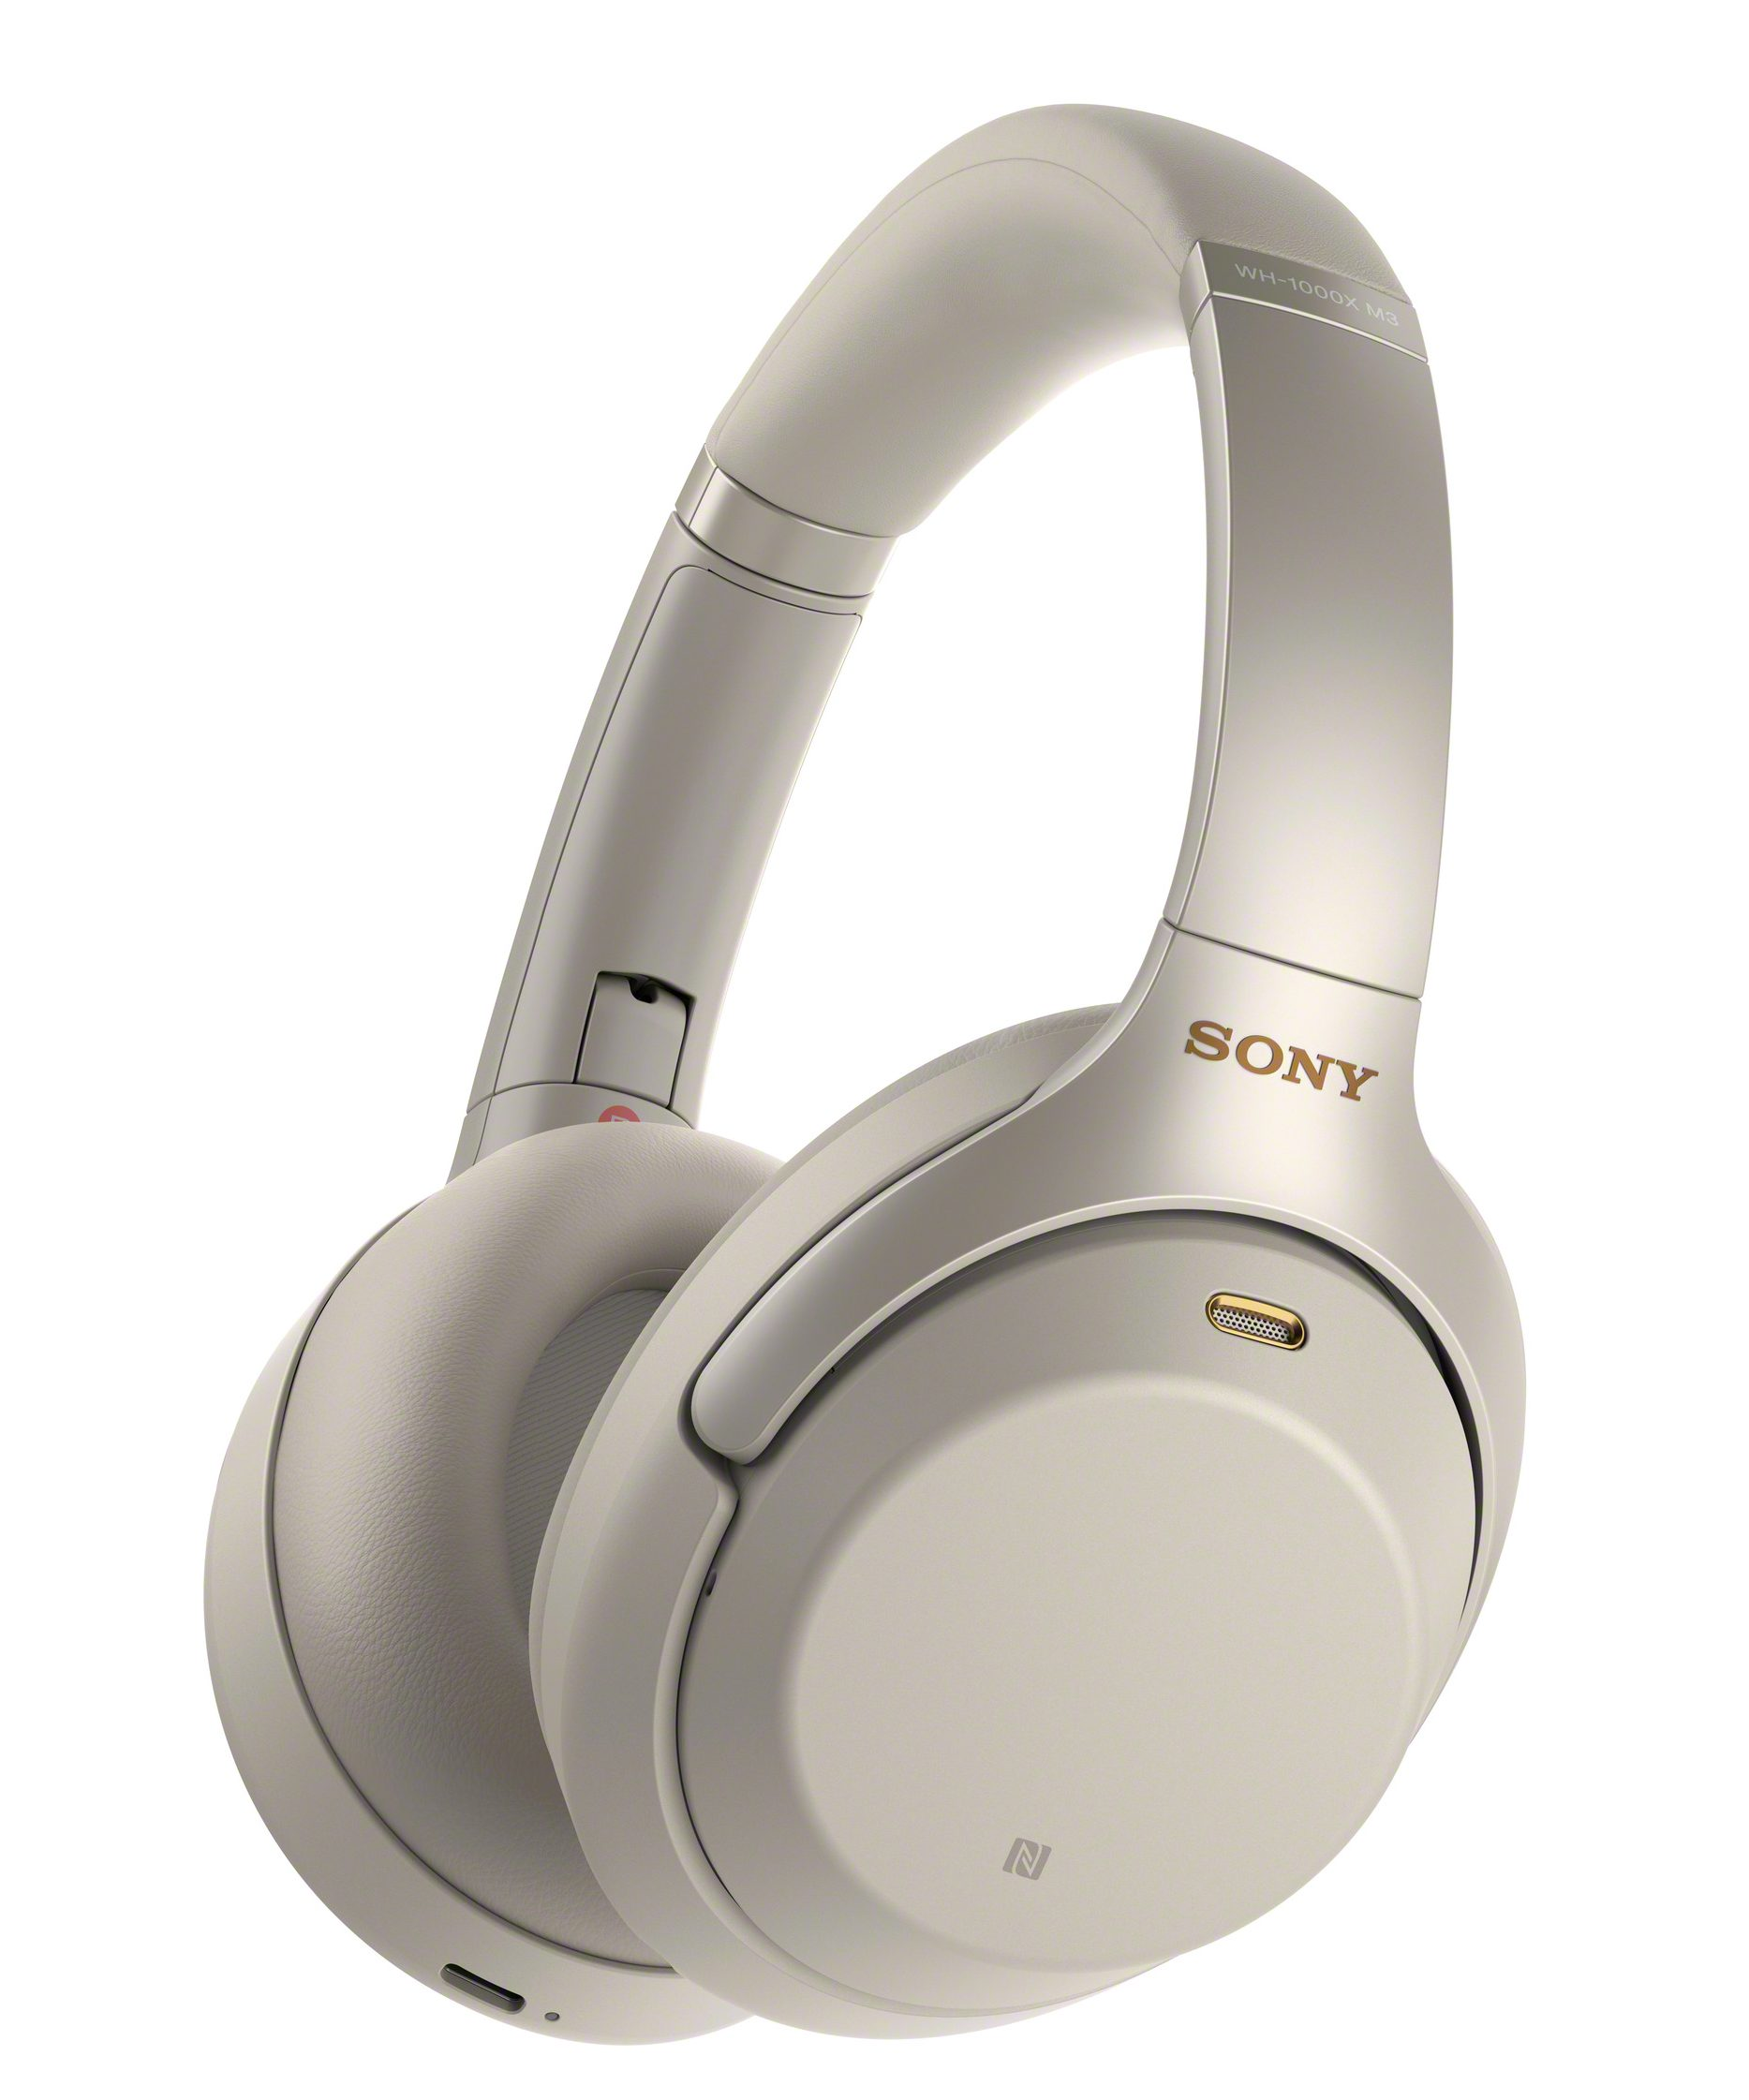 Sony Noise Canceling Headphones #sony #music #bestbuy #technology #ad